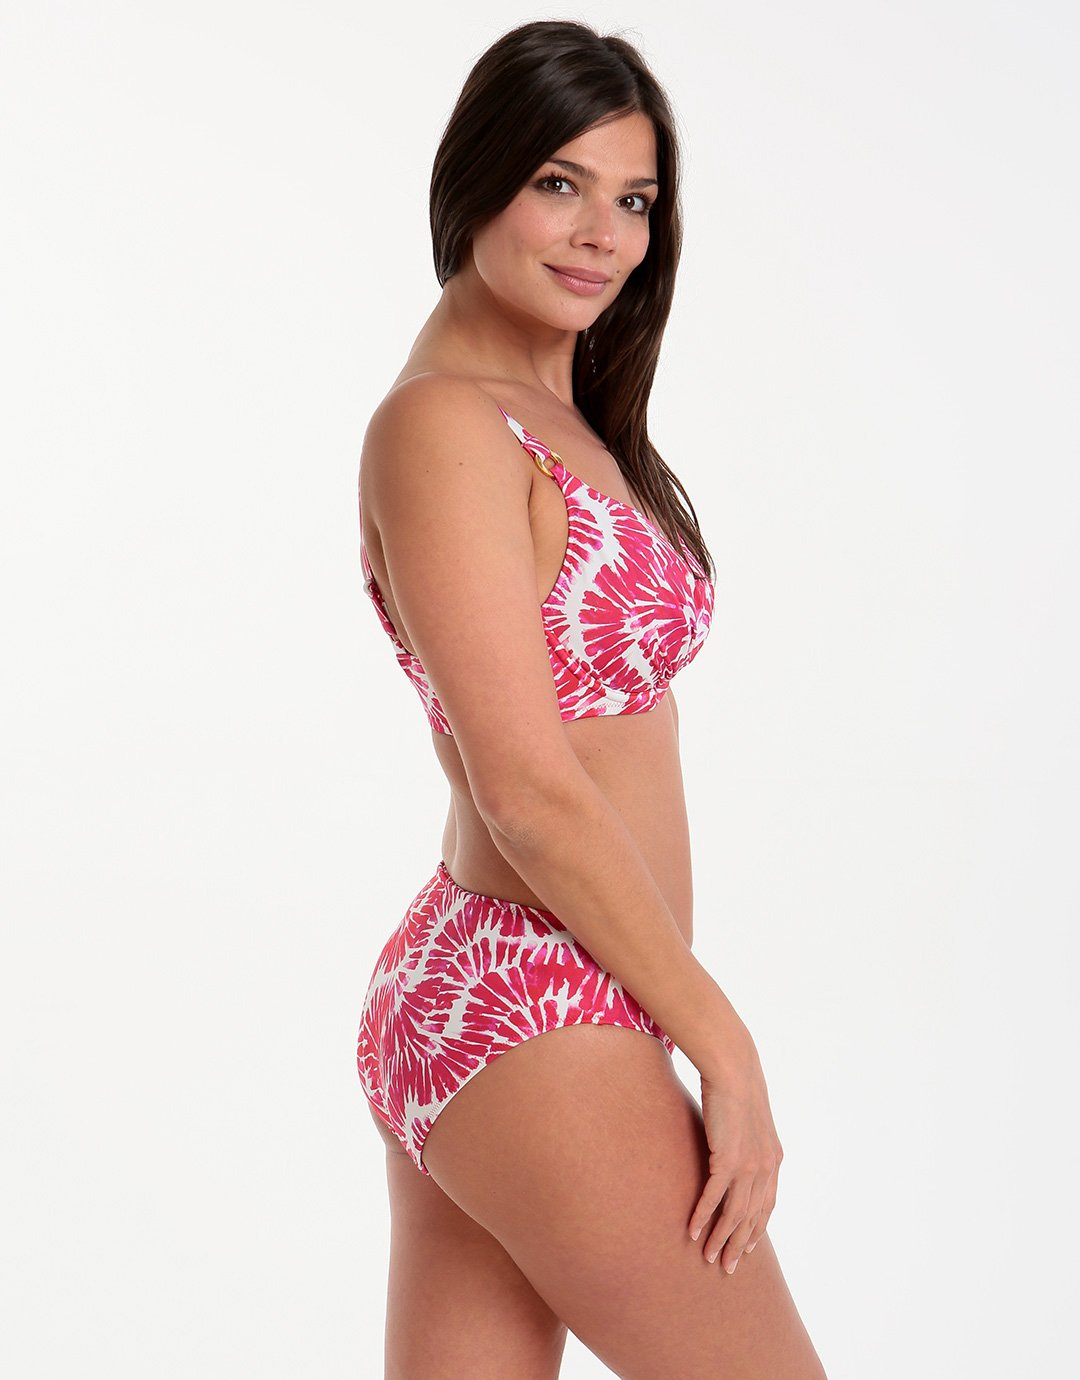 Fantasie Lanai UW Gathered Balcony Top - Rose Red